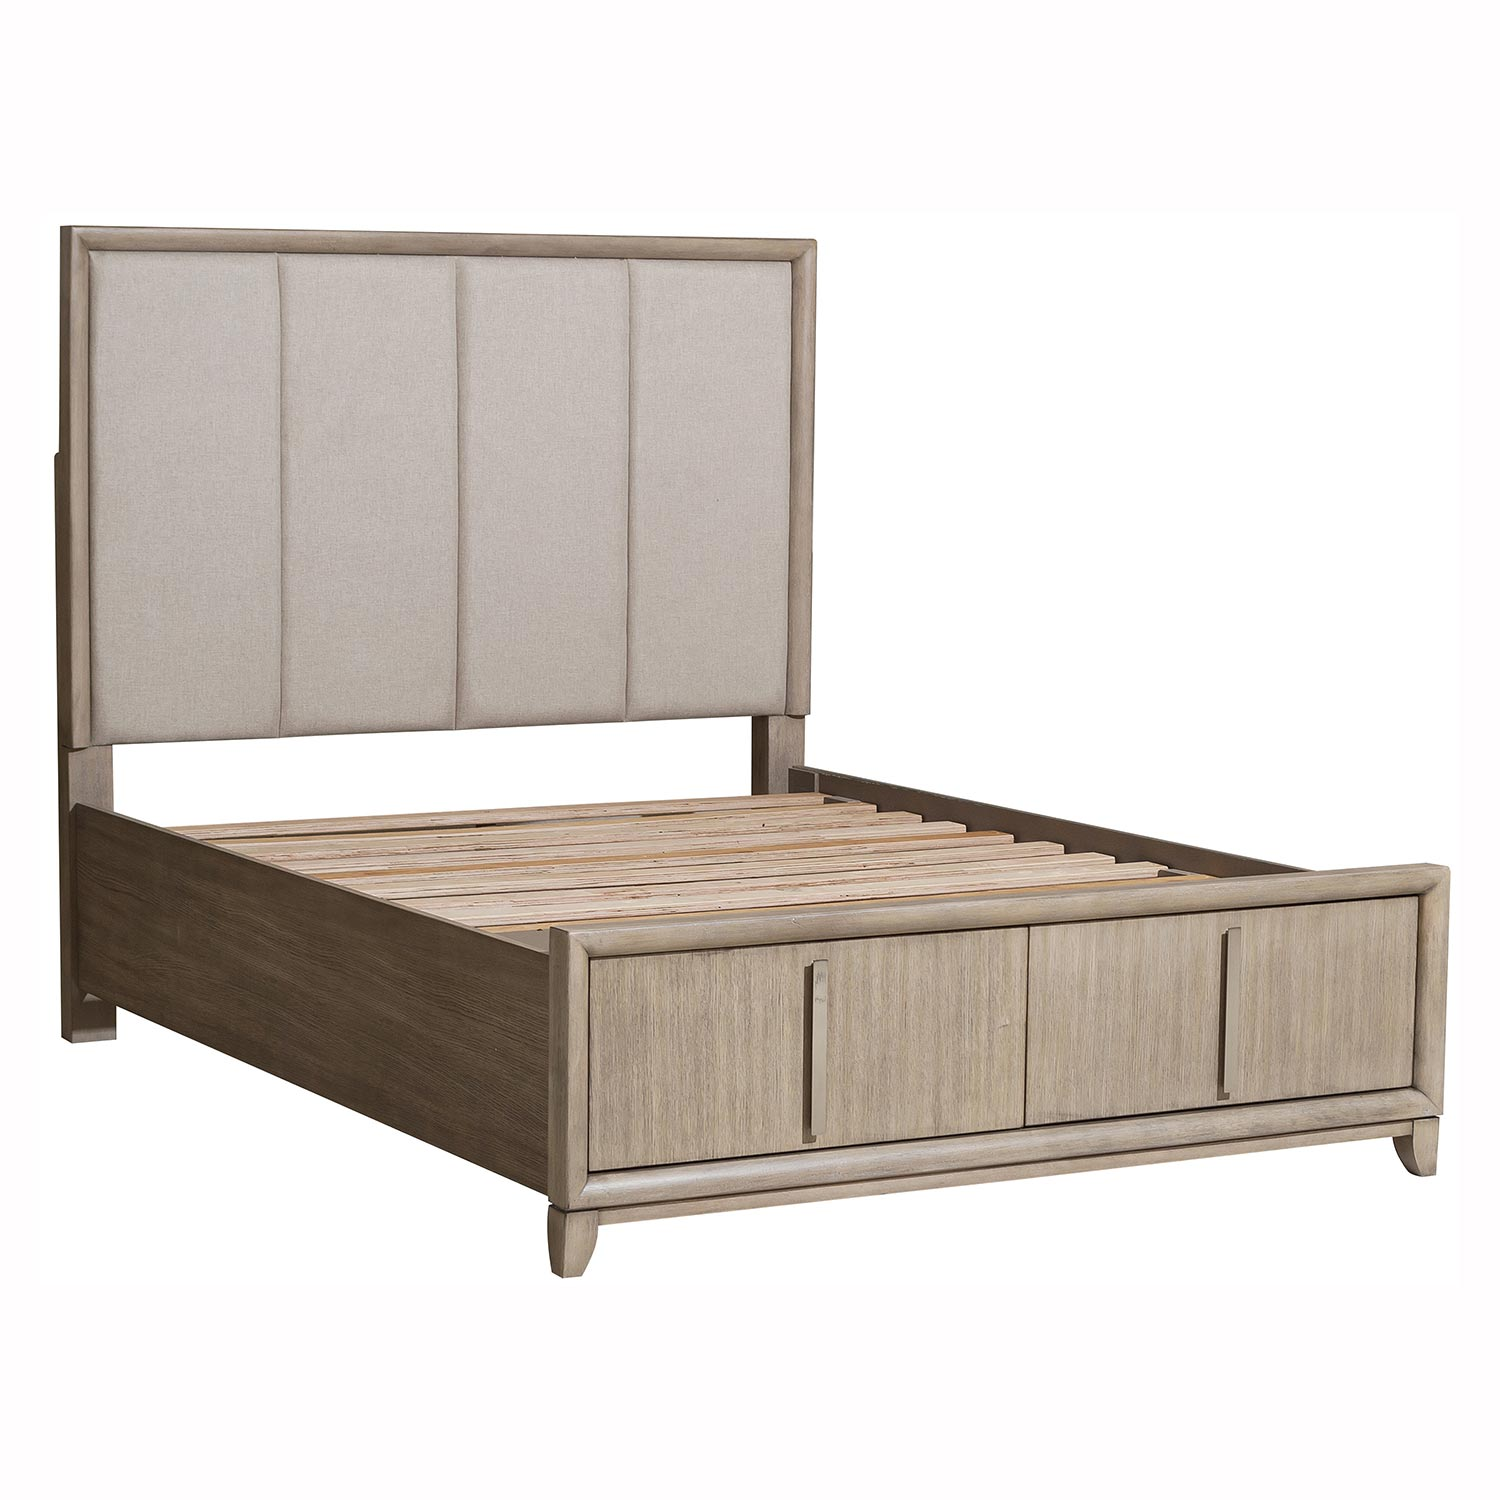 Homelegance McKewen Upholsterd Platform Bed with Footboard Storage - Light Gray